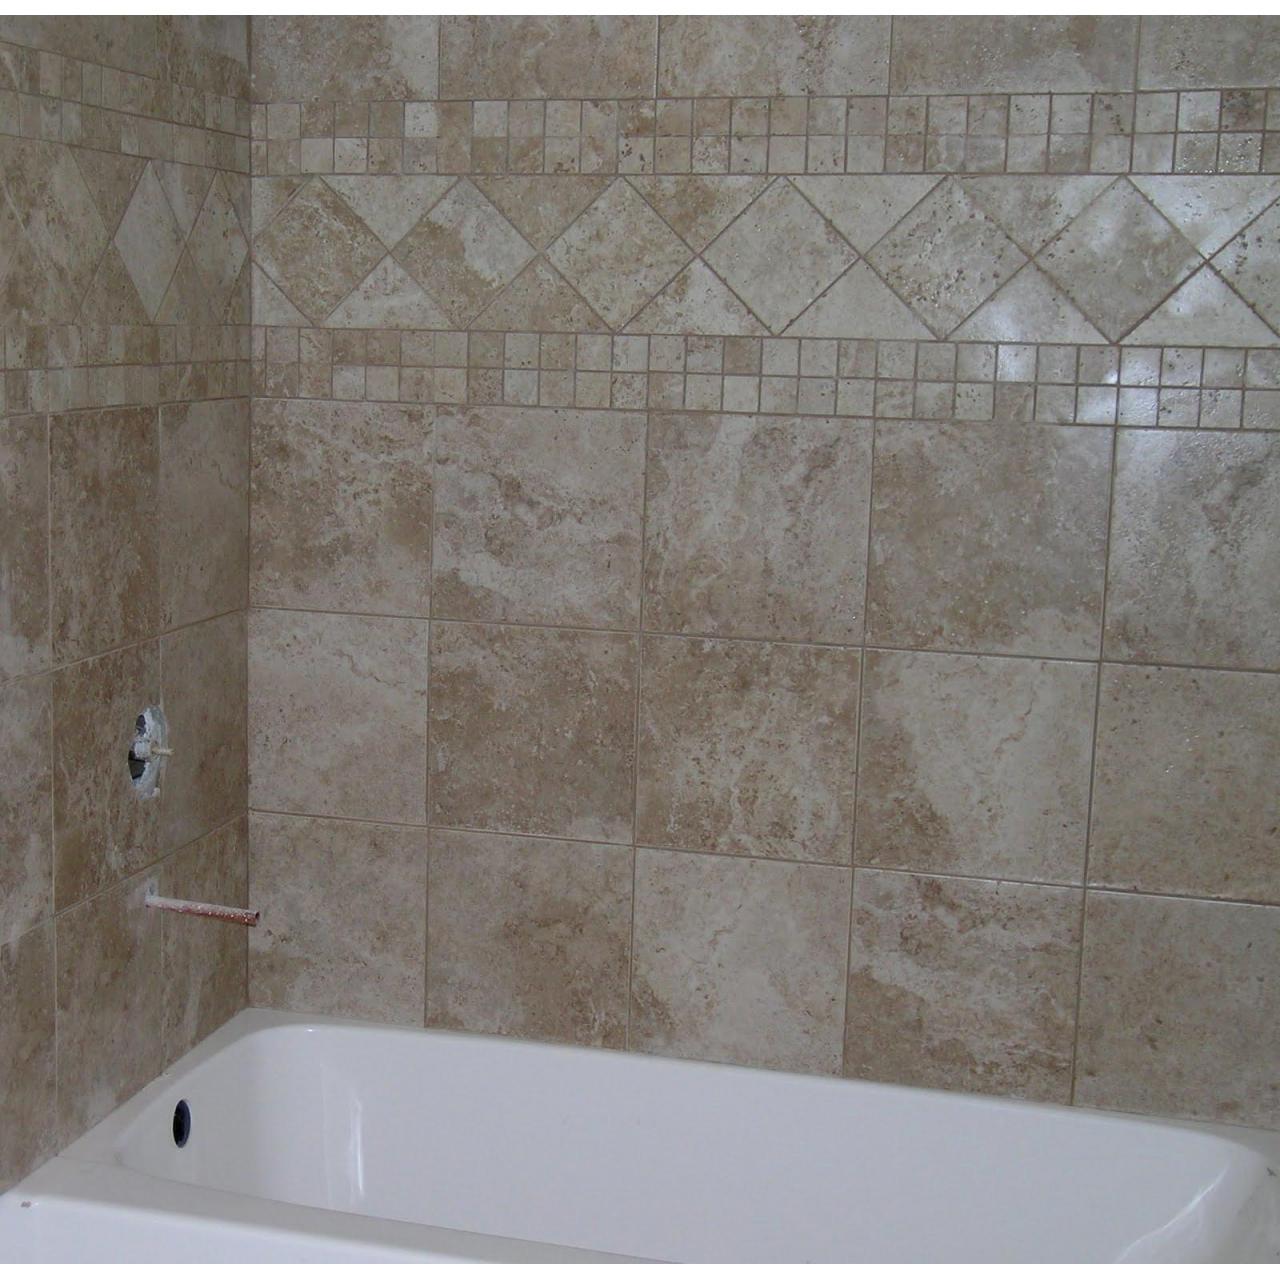 Cheap Bathroom Tile At Home Depot for sale